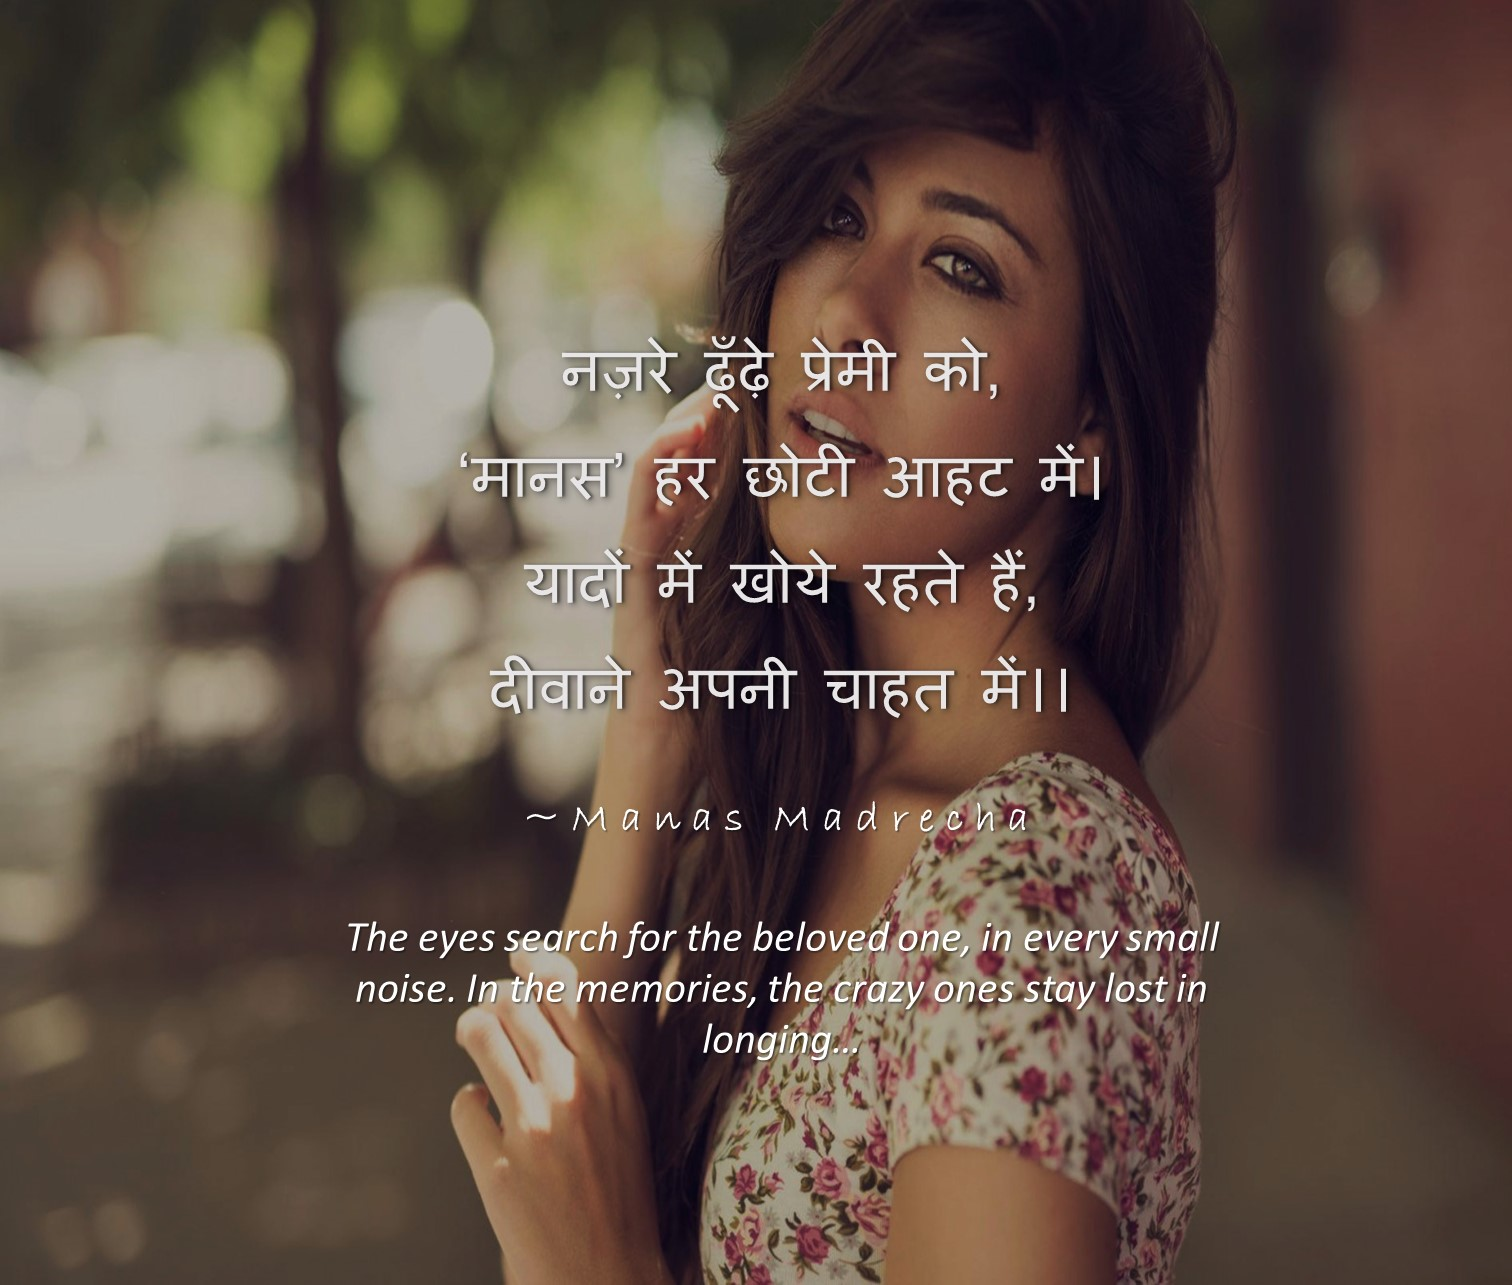 poem on love, Manas Madrecha, Manas Madrecha poems, poems by Manas Madrecha, Manas Madrecha quotes, love quotes, quotes on love, Manas Madrecha blog, simplifying universe, teenage quotes, teenage poem, youth poem, youth quotes, quotes on youth, romantic poem, beautiful girl, hot girl, girl looking, cute girl, pretty girl, girl looking straight, shy girl, sad girl, happy girl, girl in love, girl hair, girl touching hair